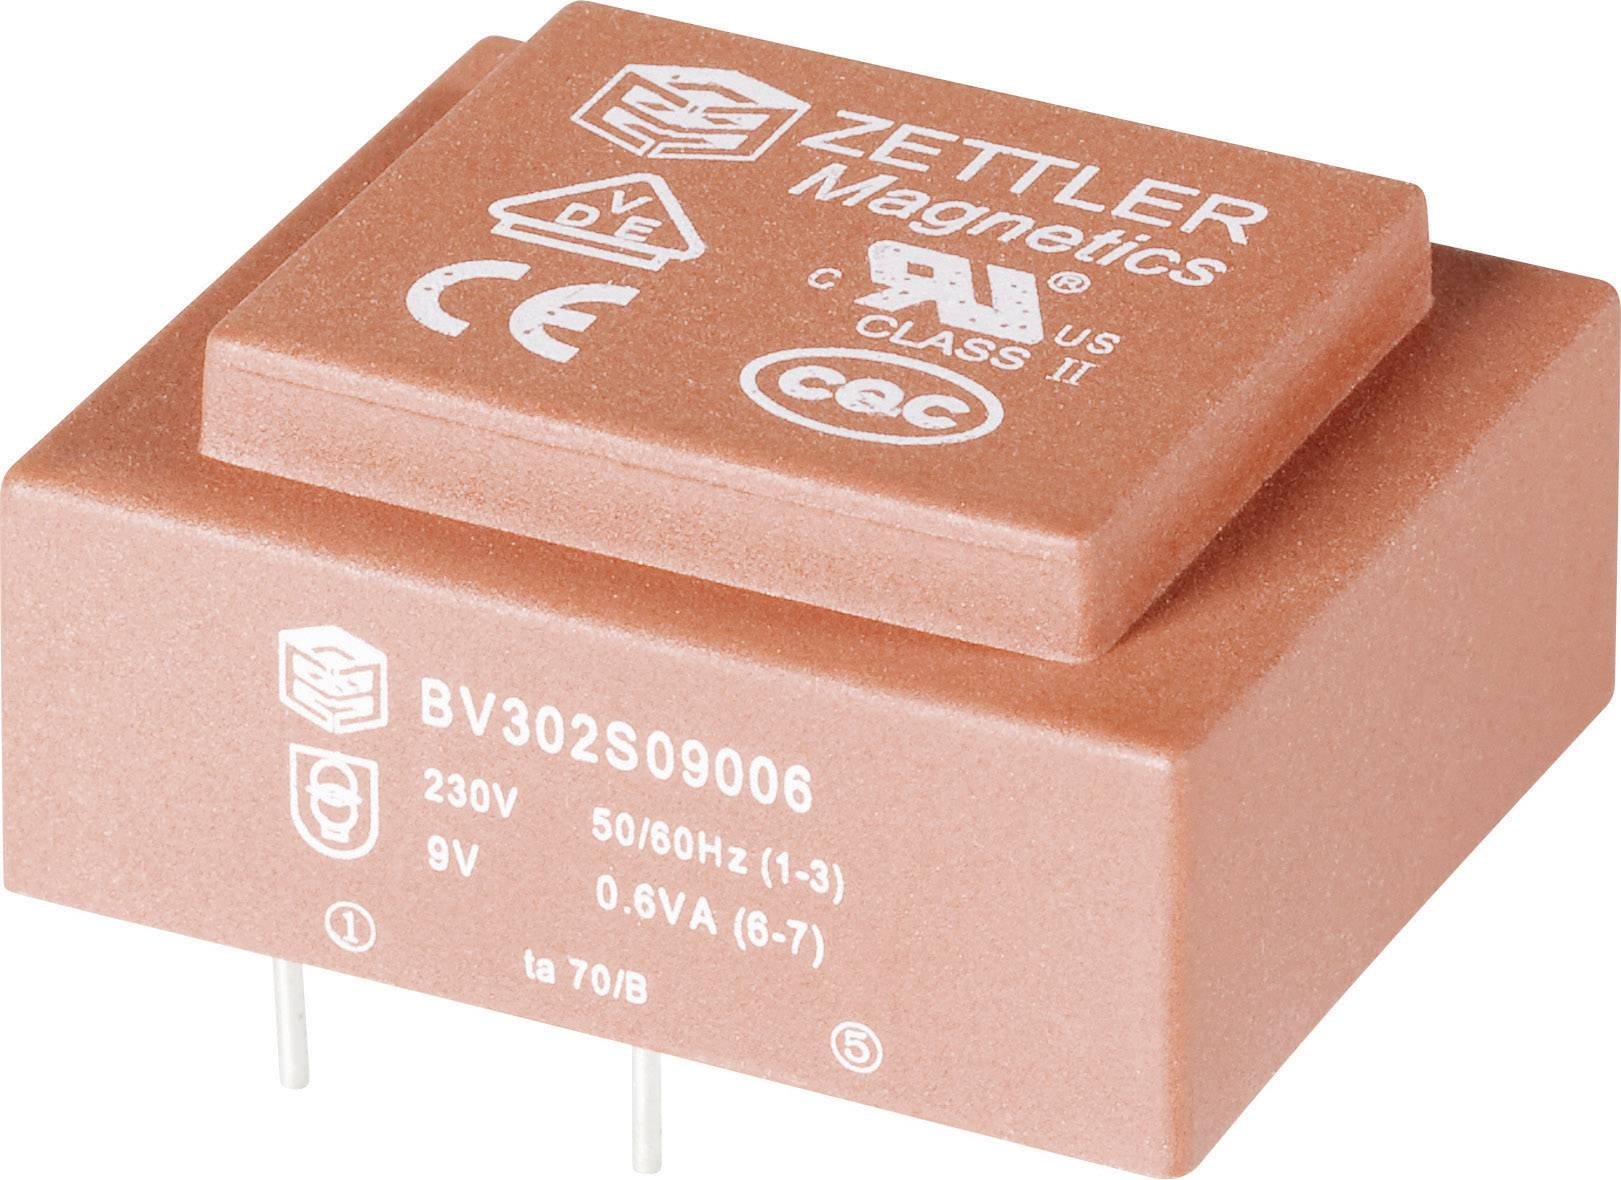 Transformátor do DPS Zettler Magnetics El30, 230 V/6 V, 100 mA, 2 VA